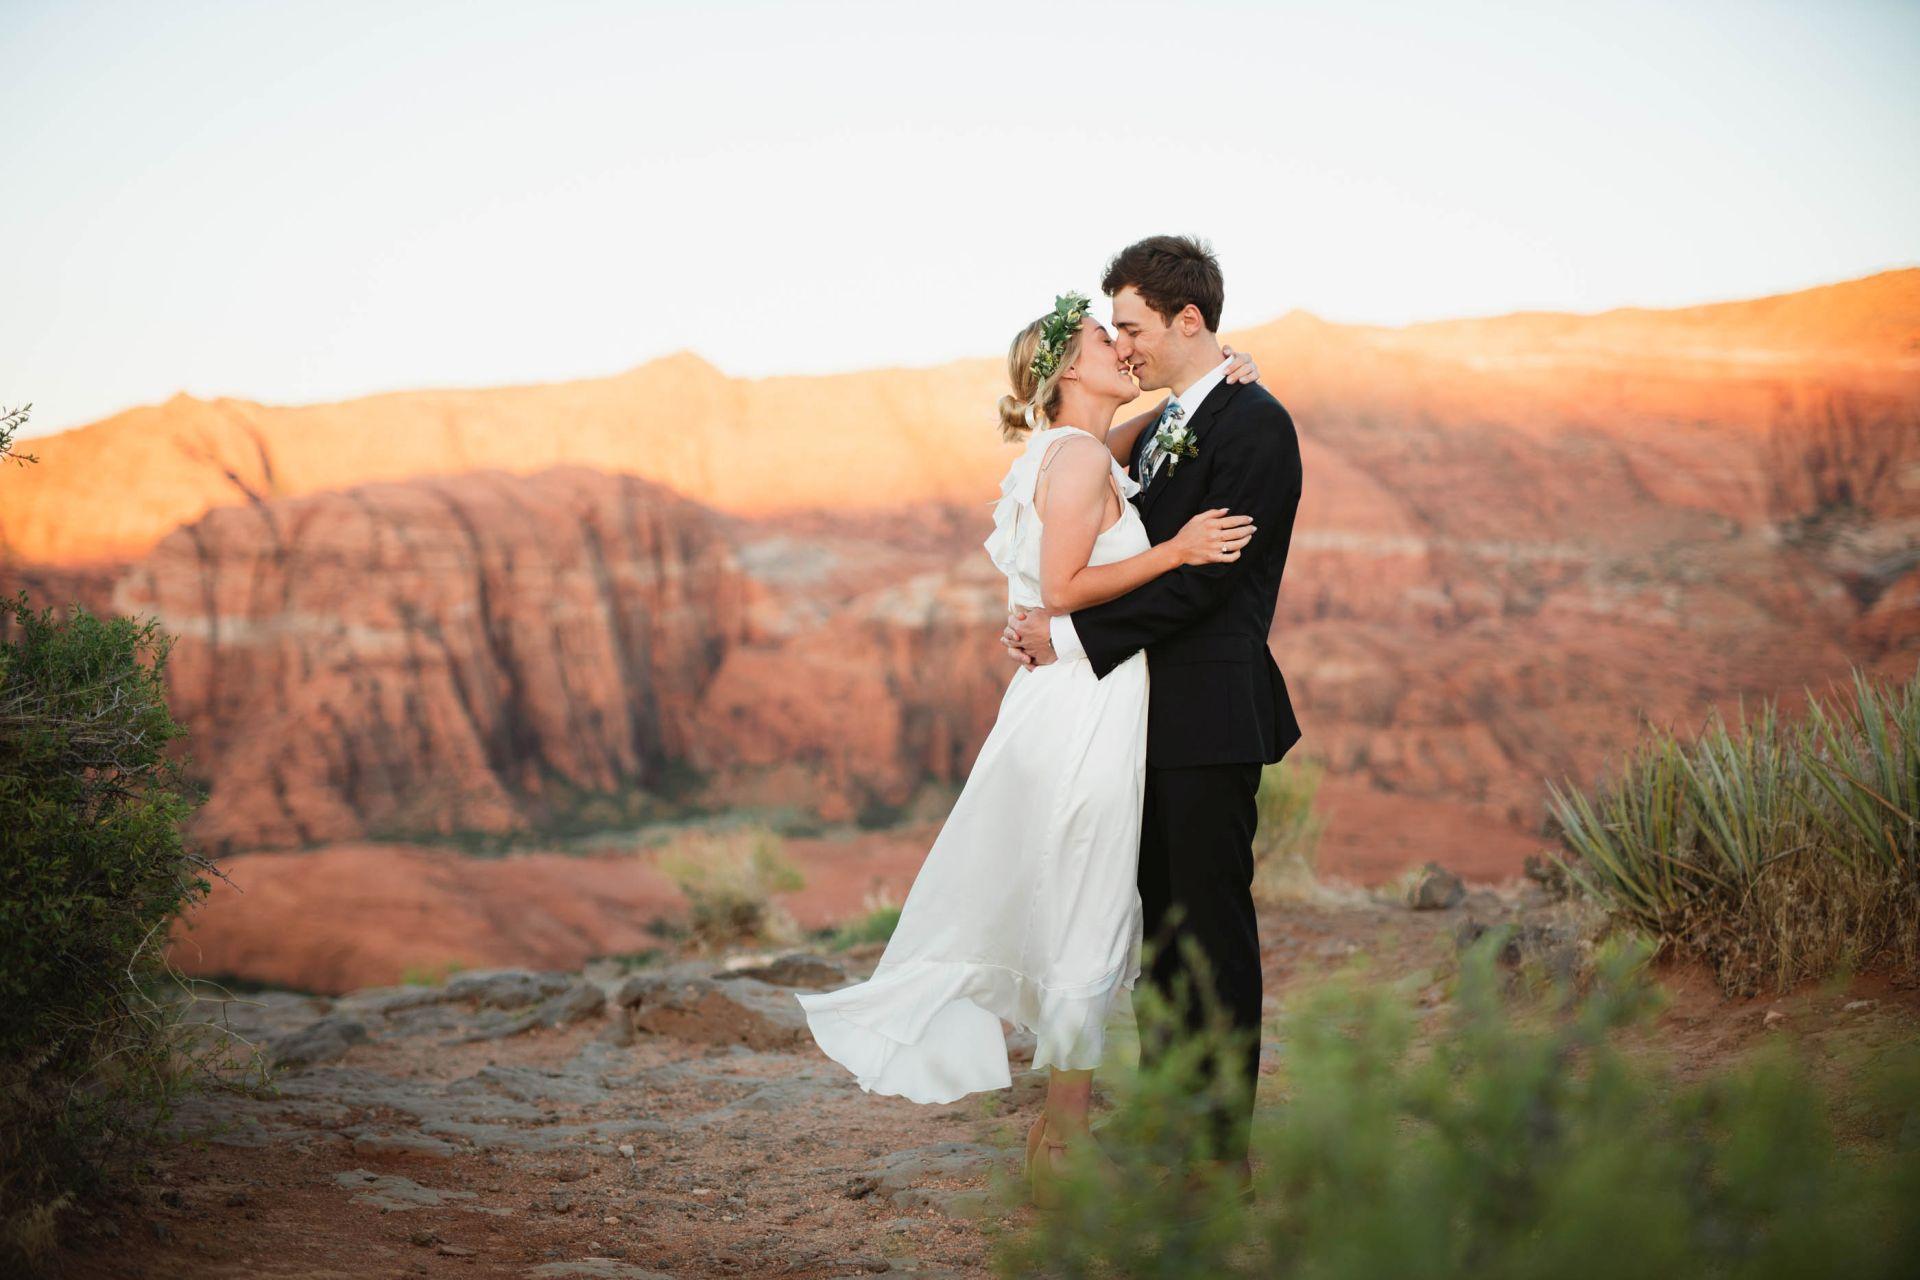 Hike Out wedding at Utah Desert - Bride and Groom kissing